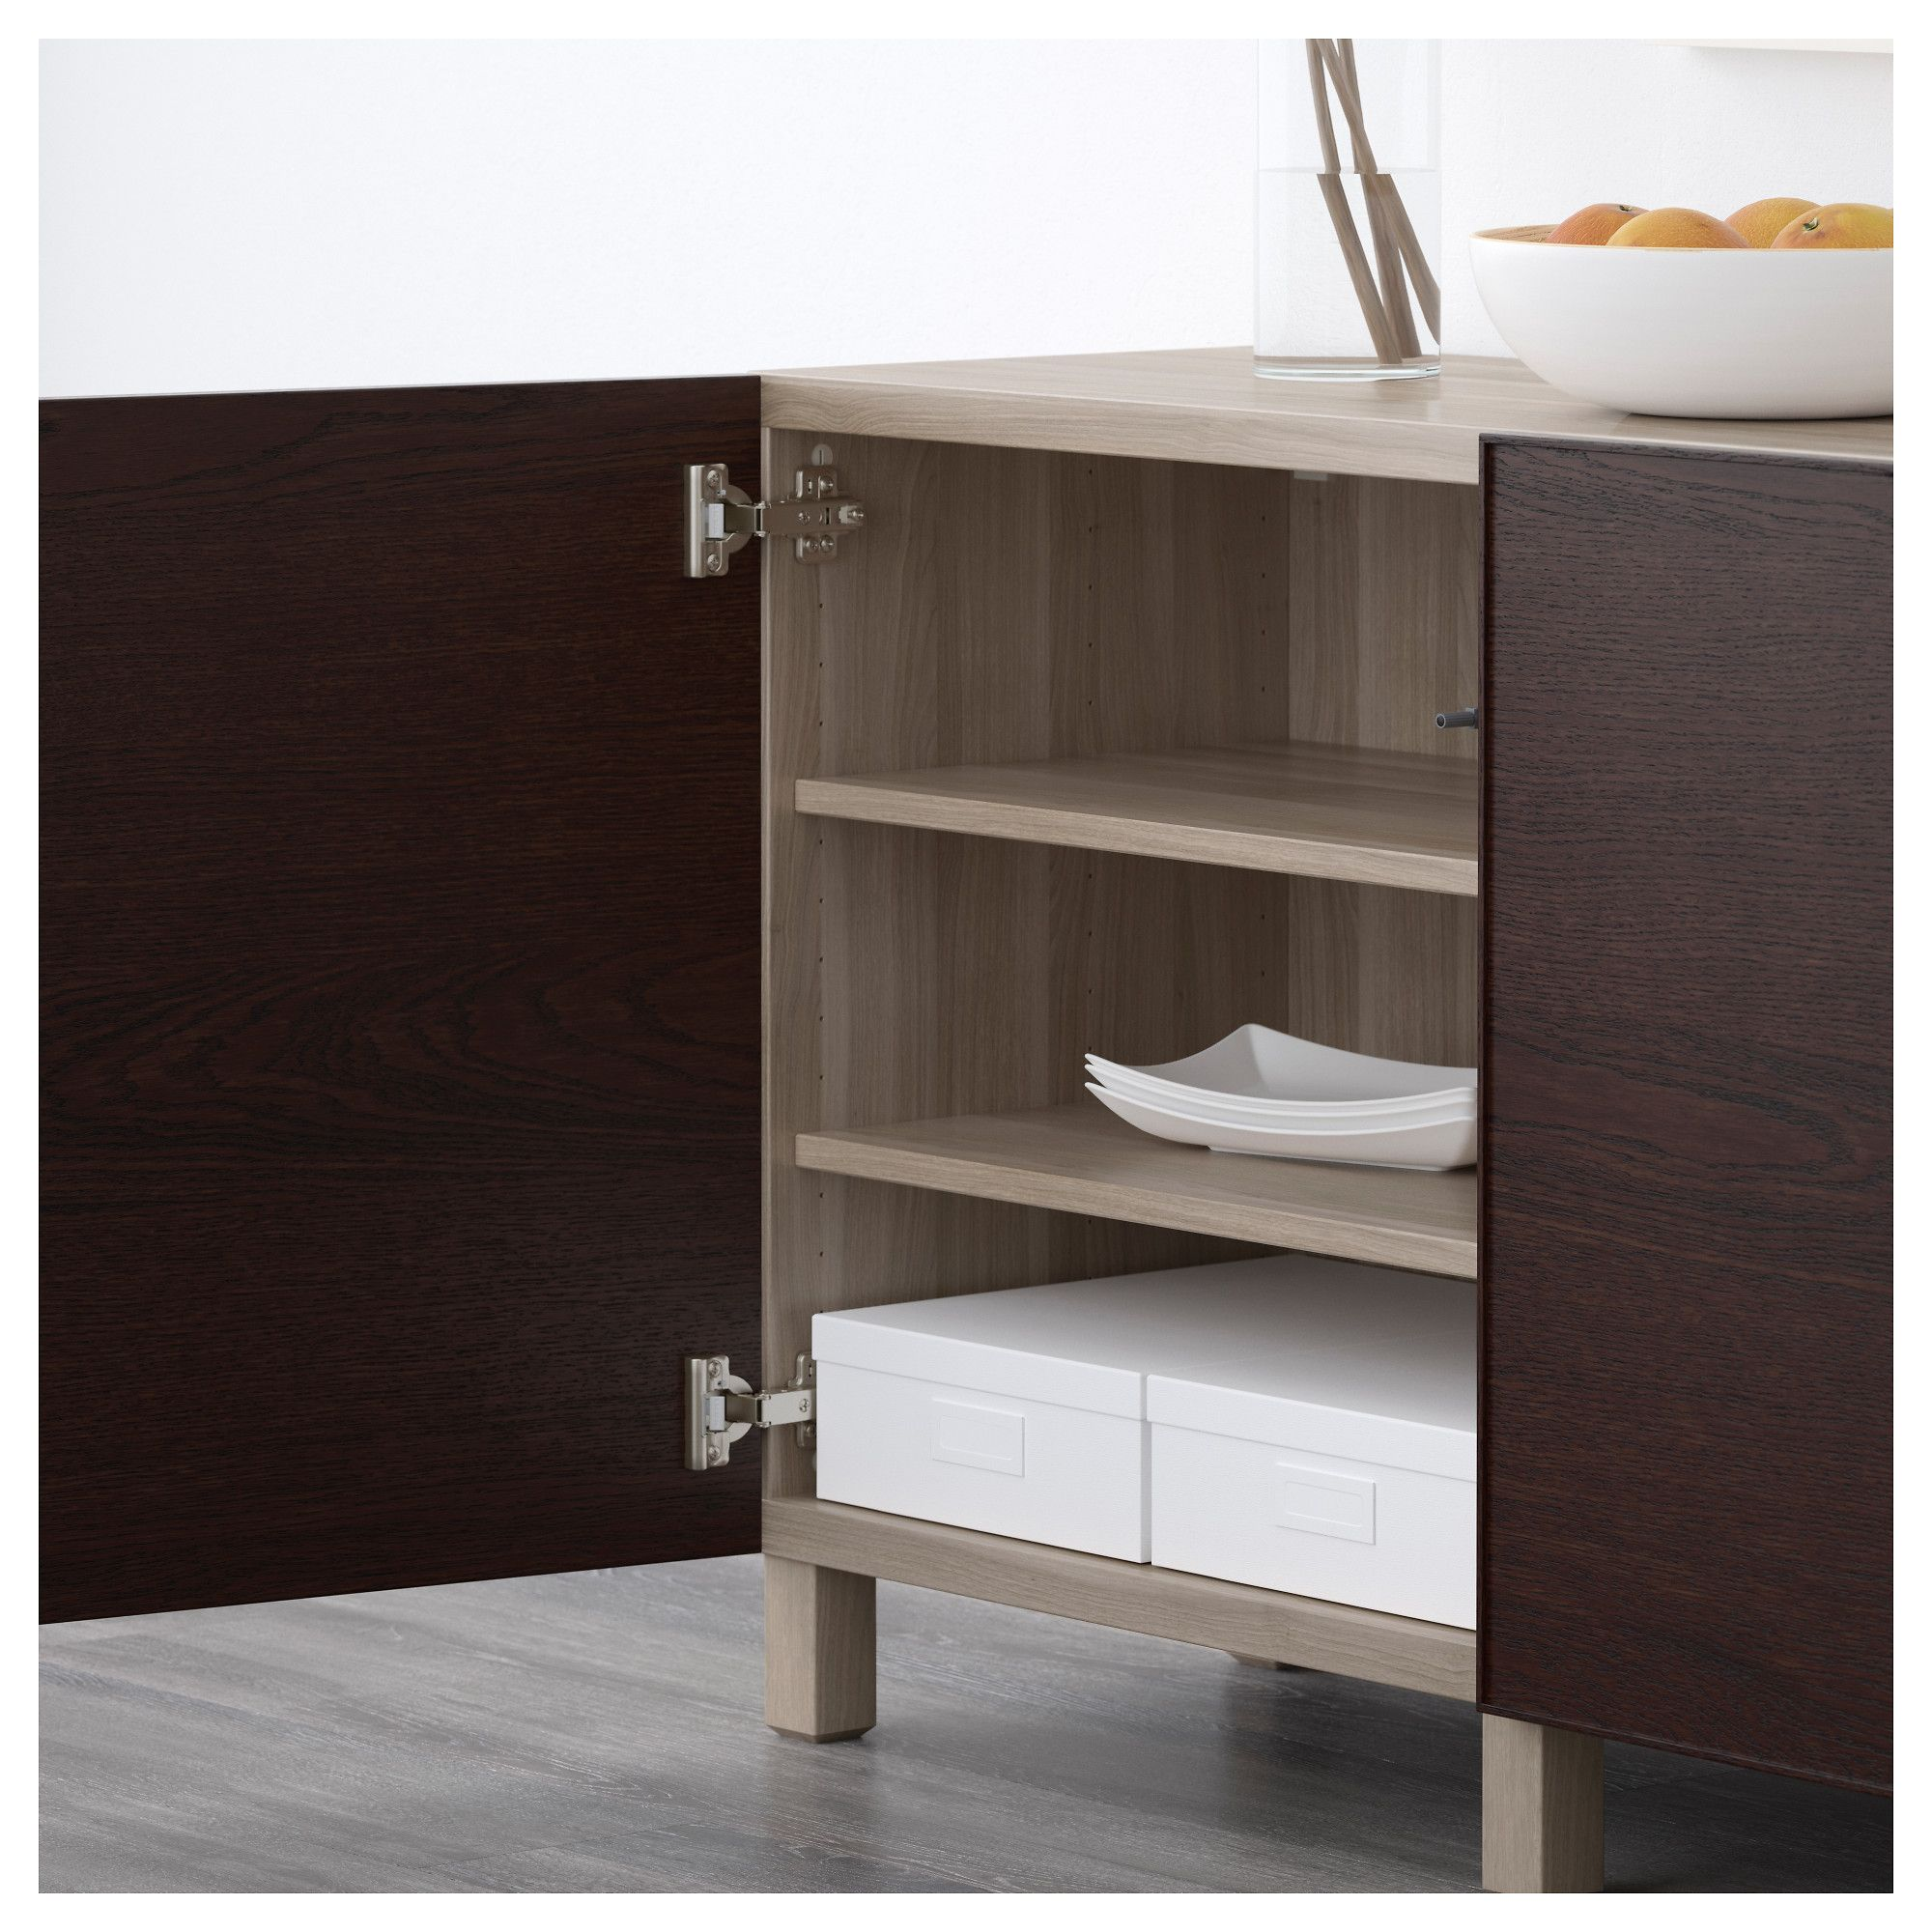 Ikea bestå storage combination with doors walnut effect light gray